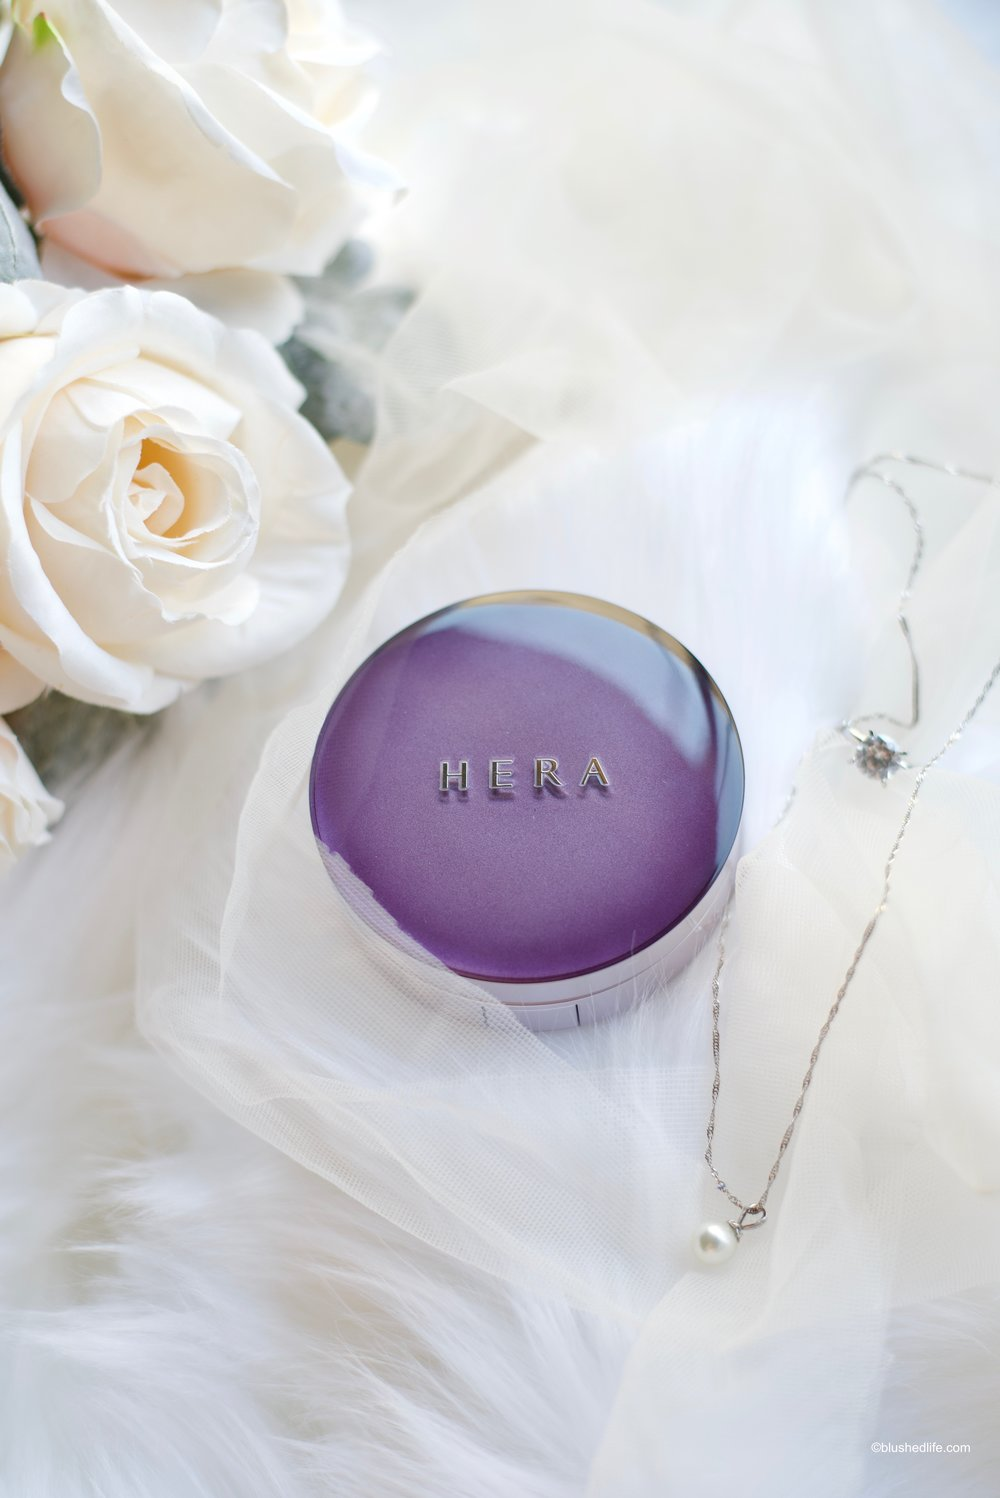 Hera UV Mist Cushion Dry Skin Acne Skin Review_DSC_3623.jpg